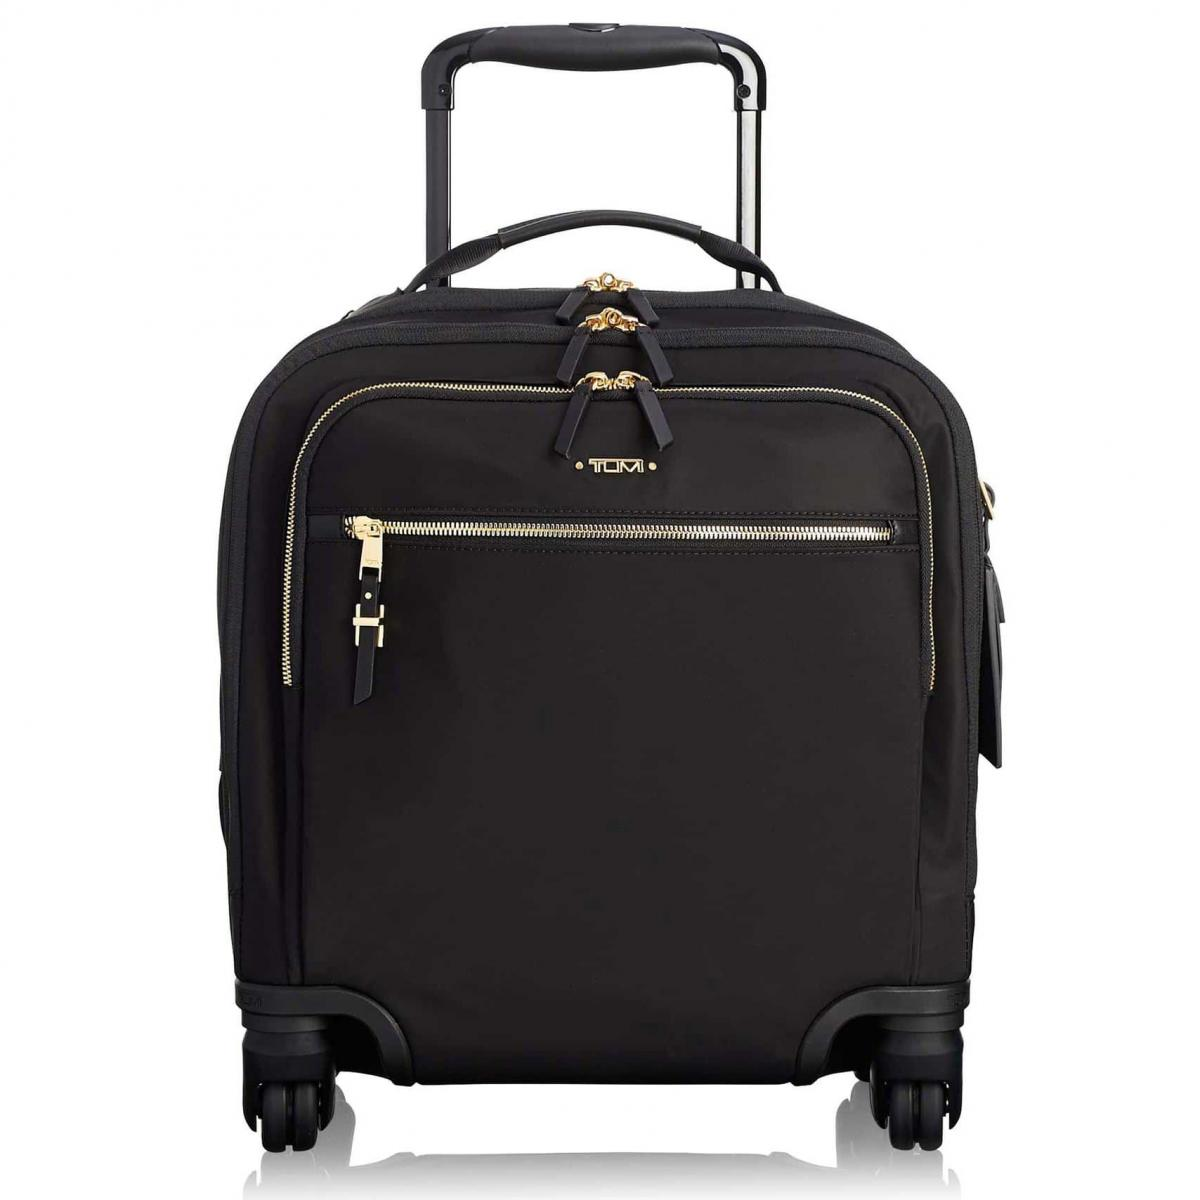 Tumi Voyageur Osona 16-inch Compact Carry-On